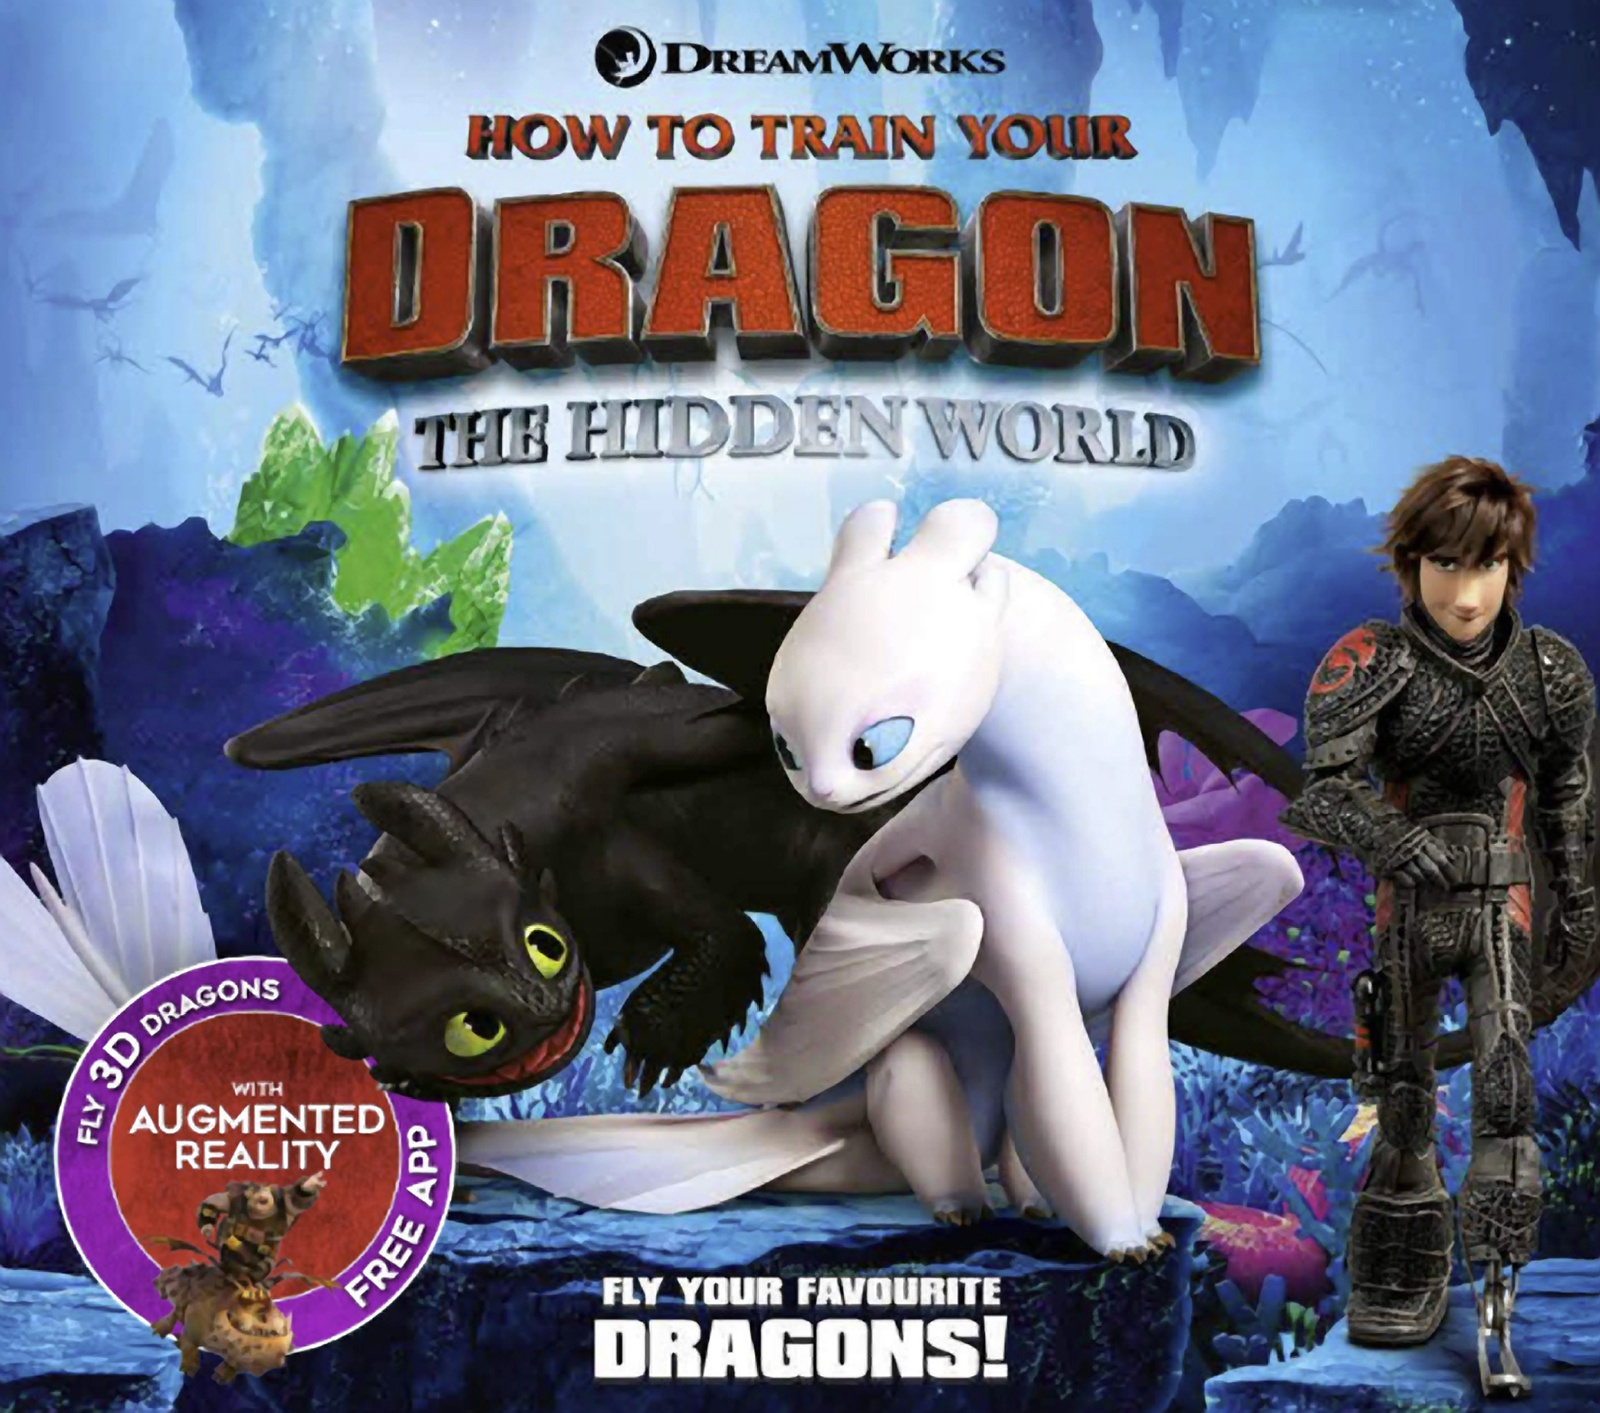 How To Train Your Dragon The Hidden World Augmented Reality Emily Stead 9781783124343 Allen Unwin Australia